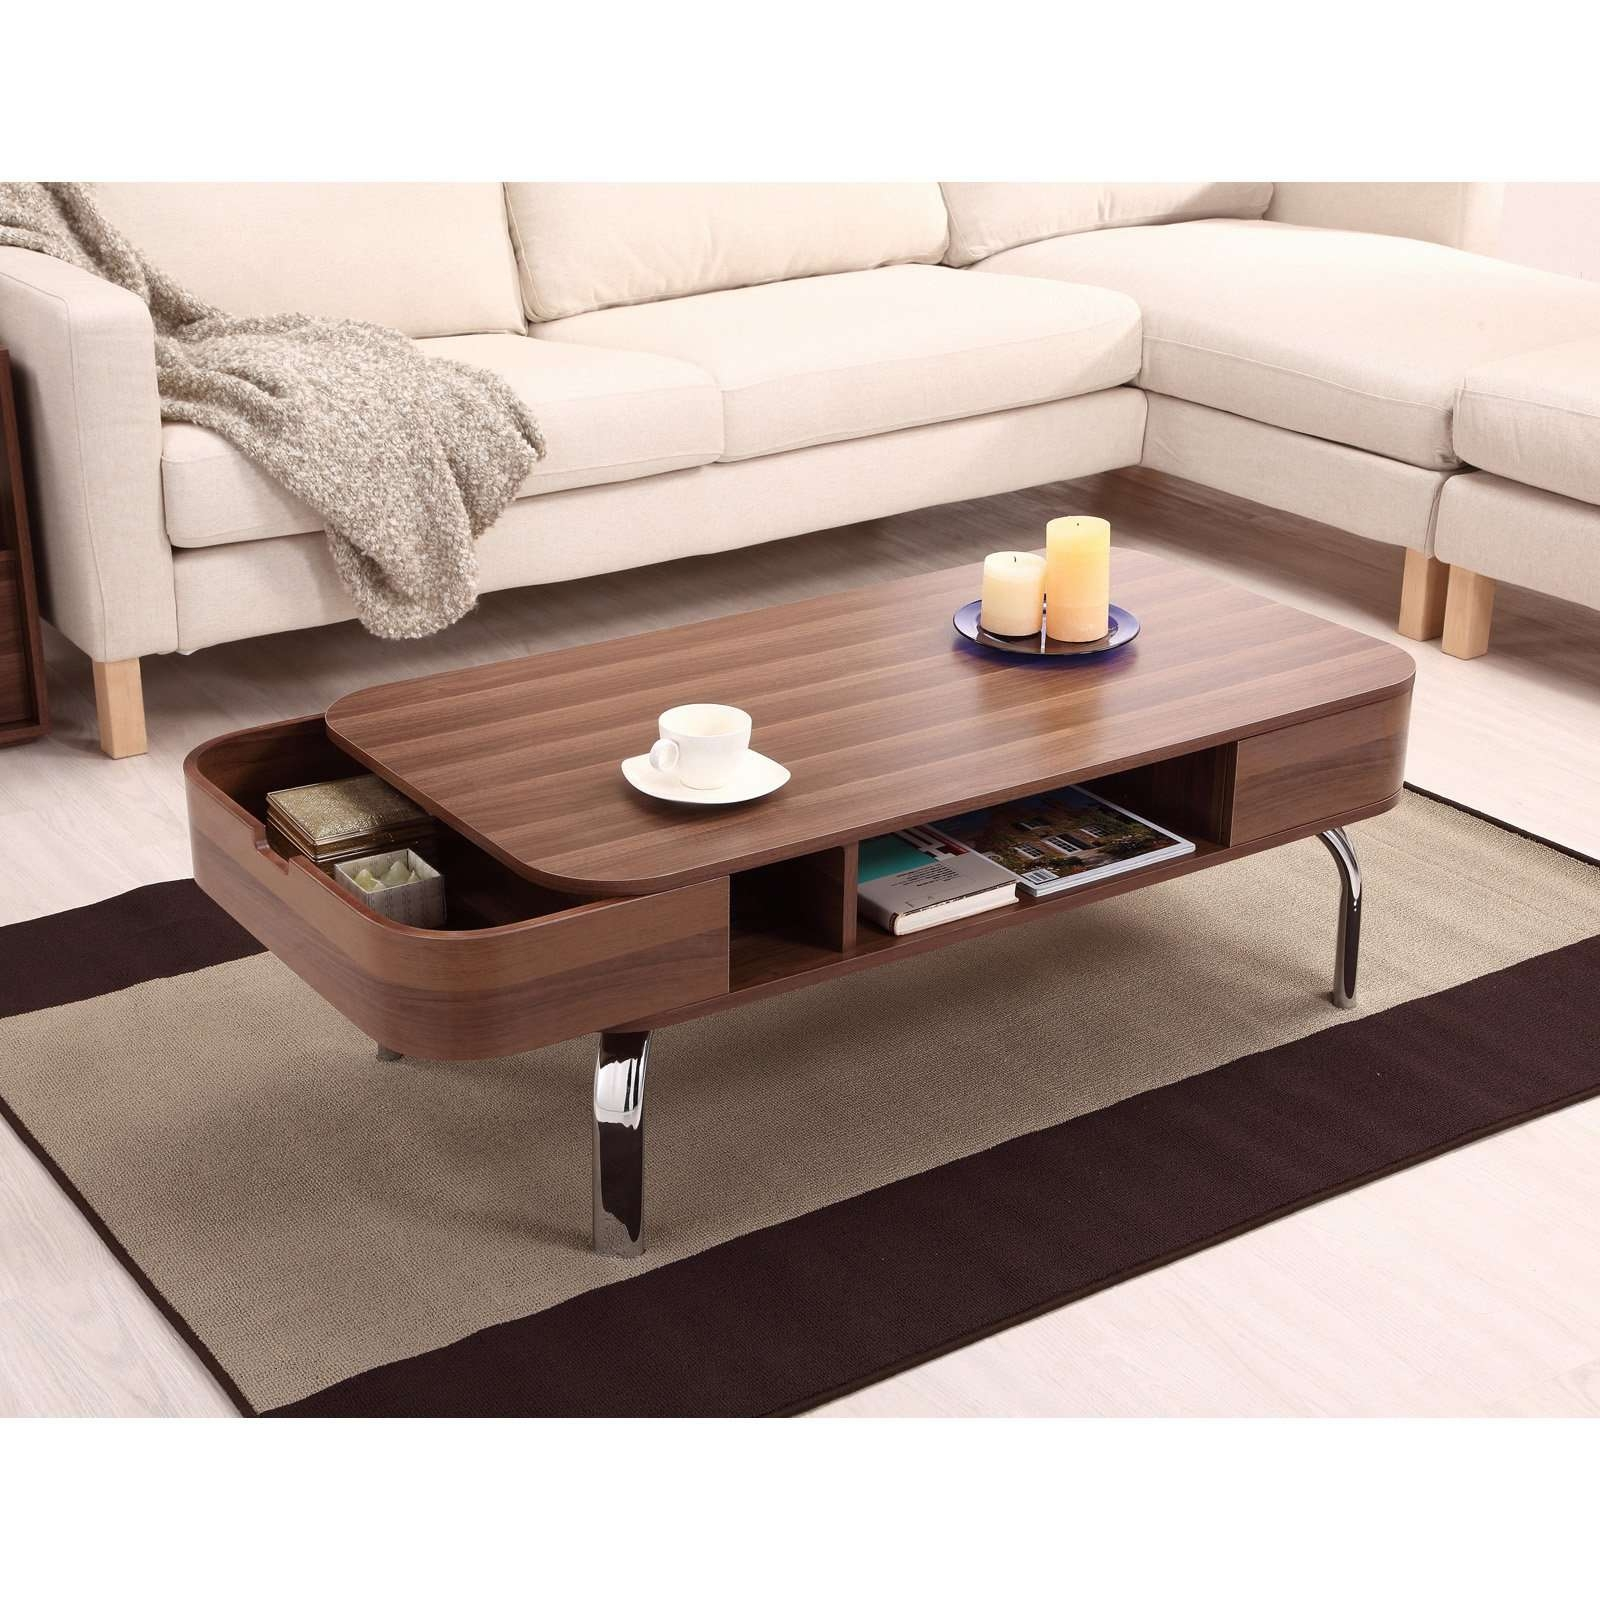 Coffee Table : Amazing Espresso Coffee Table White Coffee Table Pertaining To Popular Rounded Corner Coffee Tables (View 11 of 20)